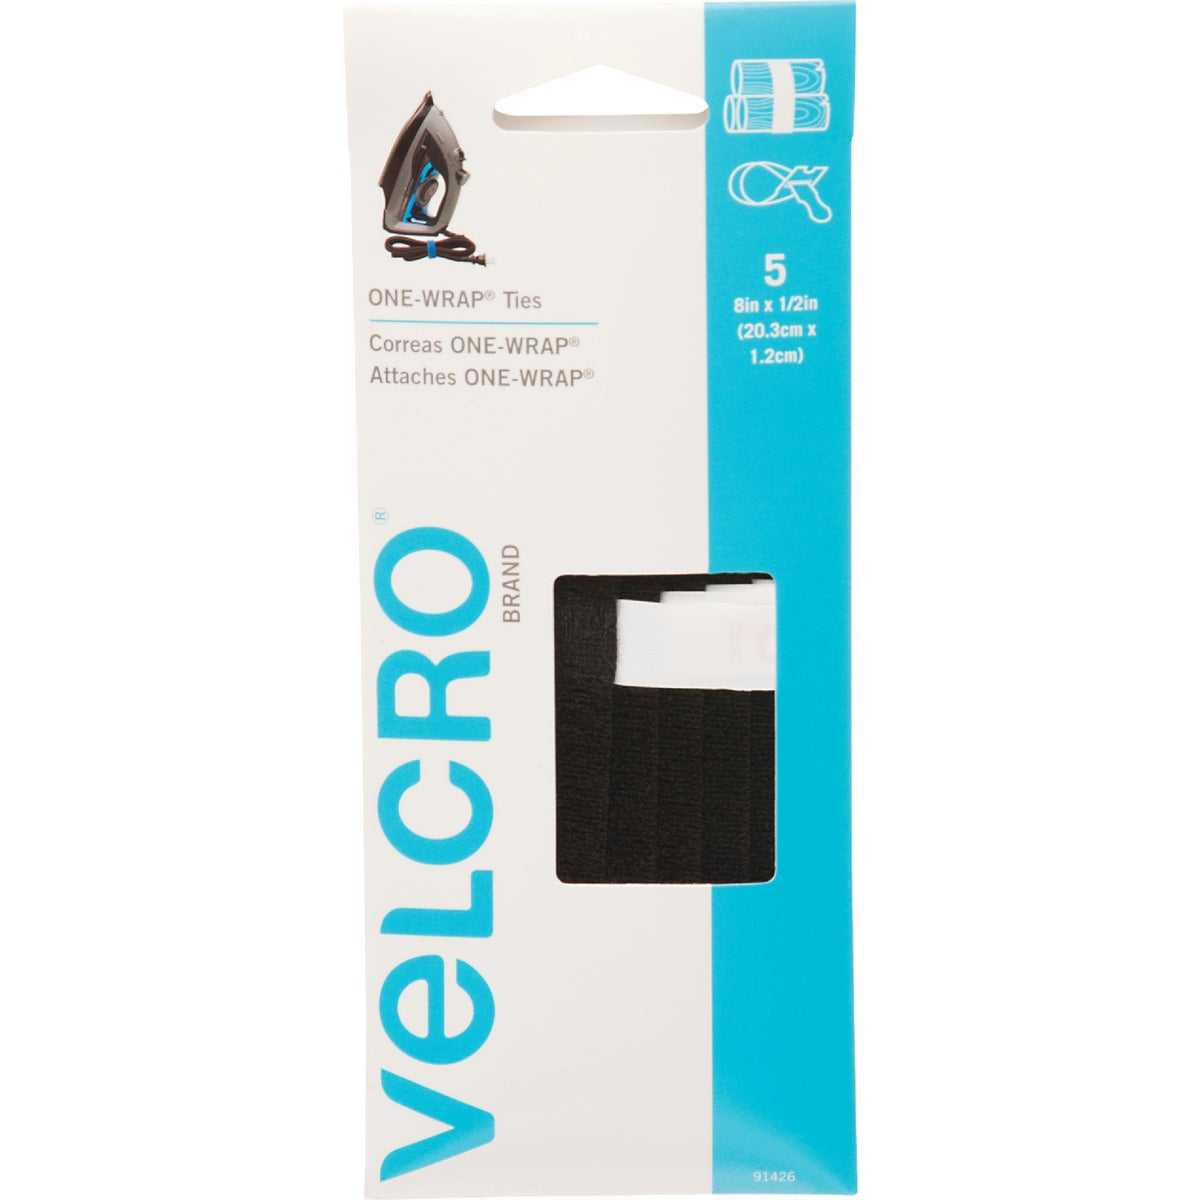 BLK WRITEON 1-WRAP STRAP - 91426 by Velcro Usa